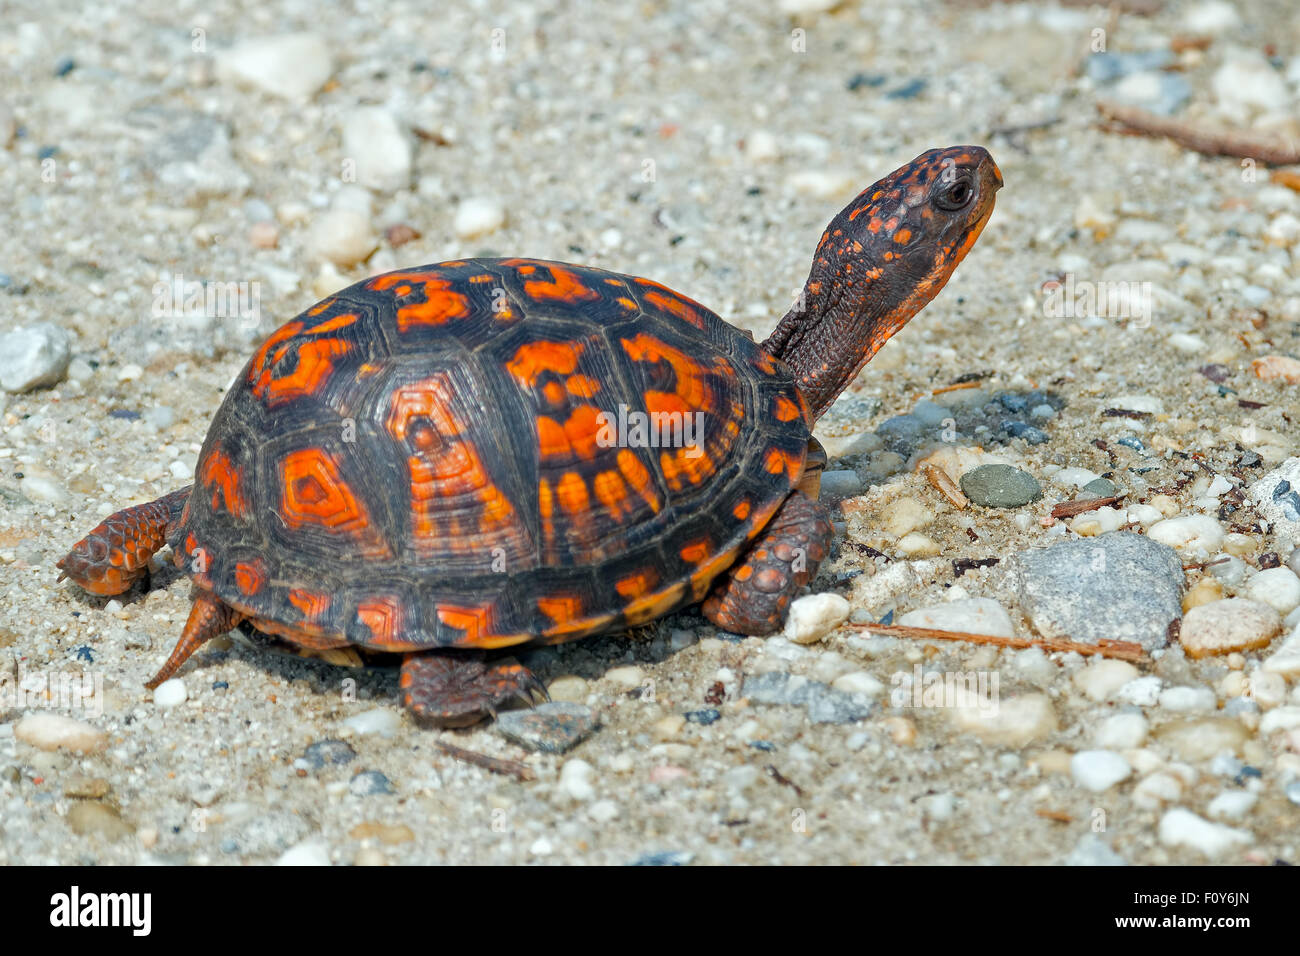 Box Turtles On the Dirt Road - Stock Image